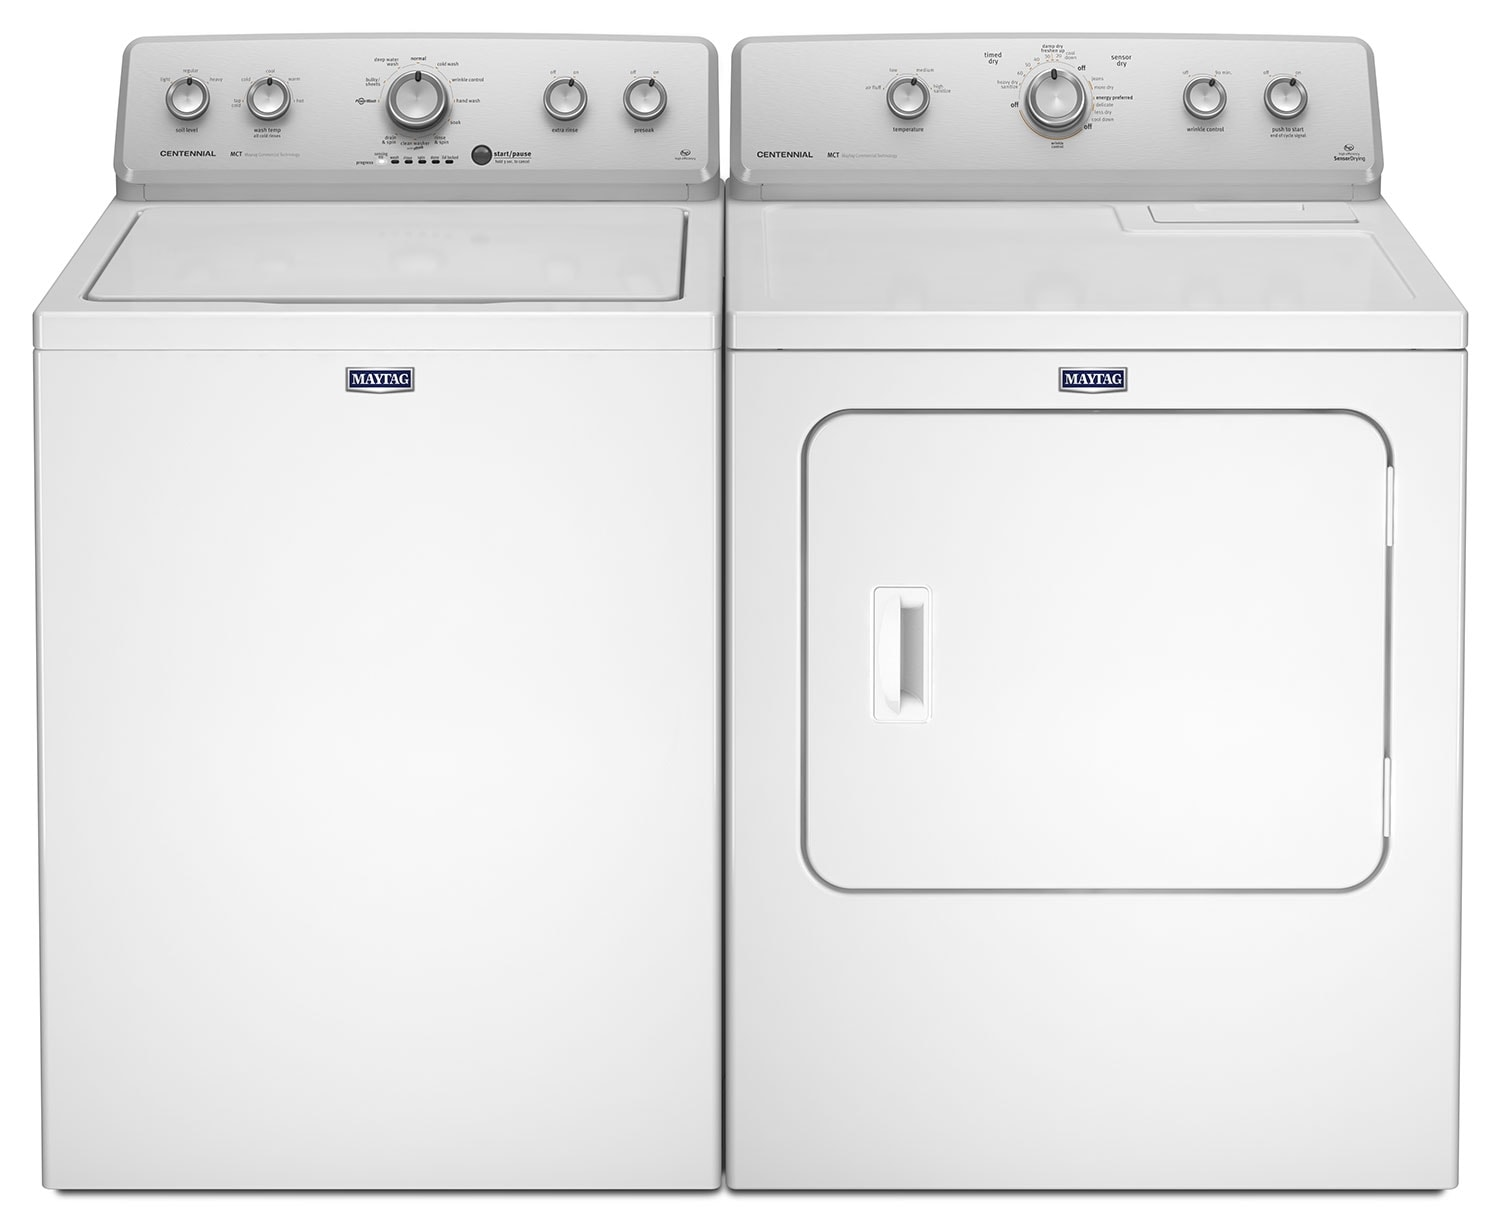 Washers and Dryers - Maytag® 4.2 Cu. Ft. Top-Load Washing Machine and 7.0 Cu. Ft. Electric Dryer - White